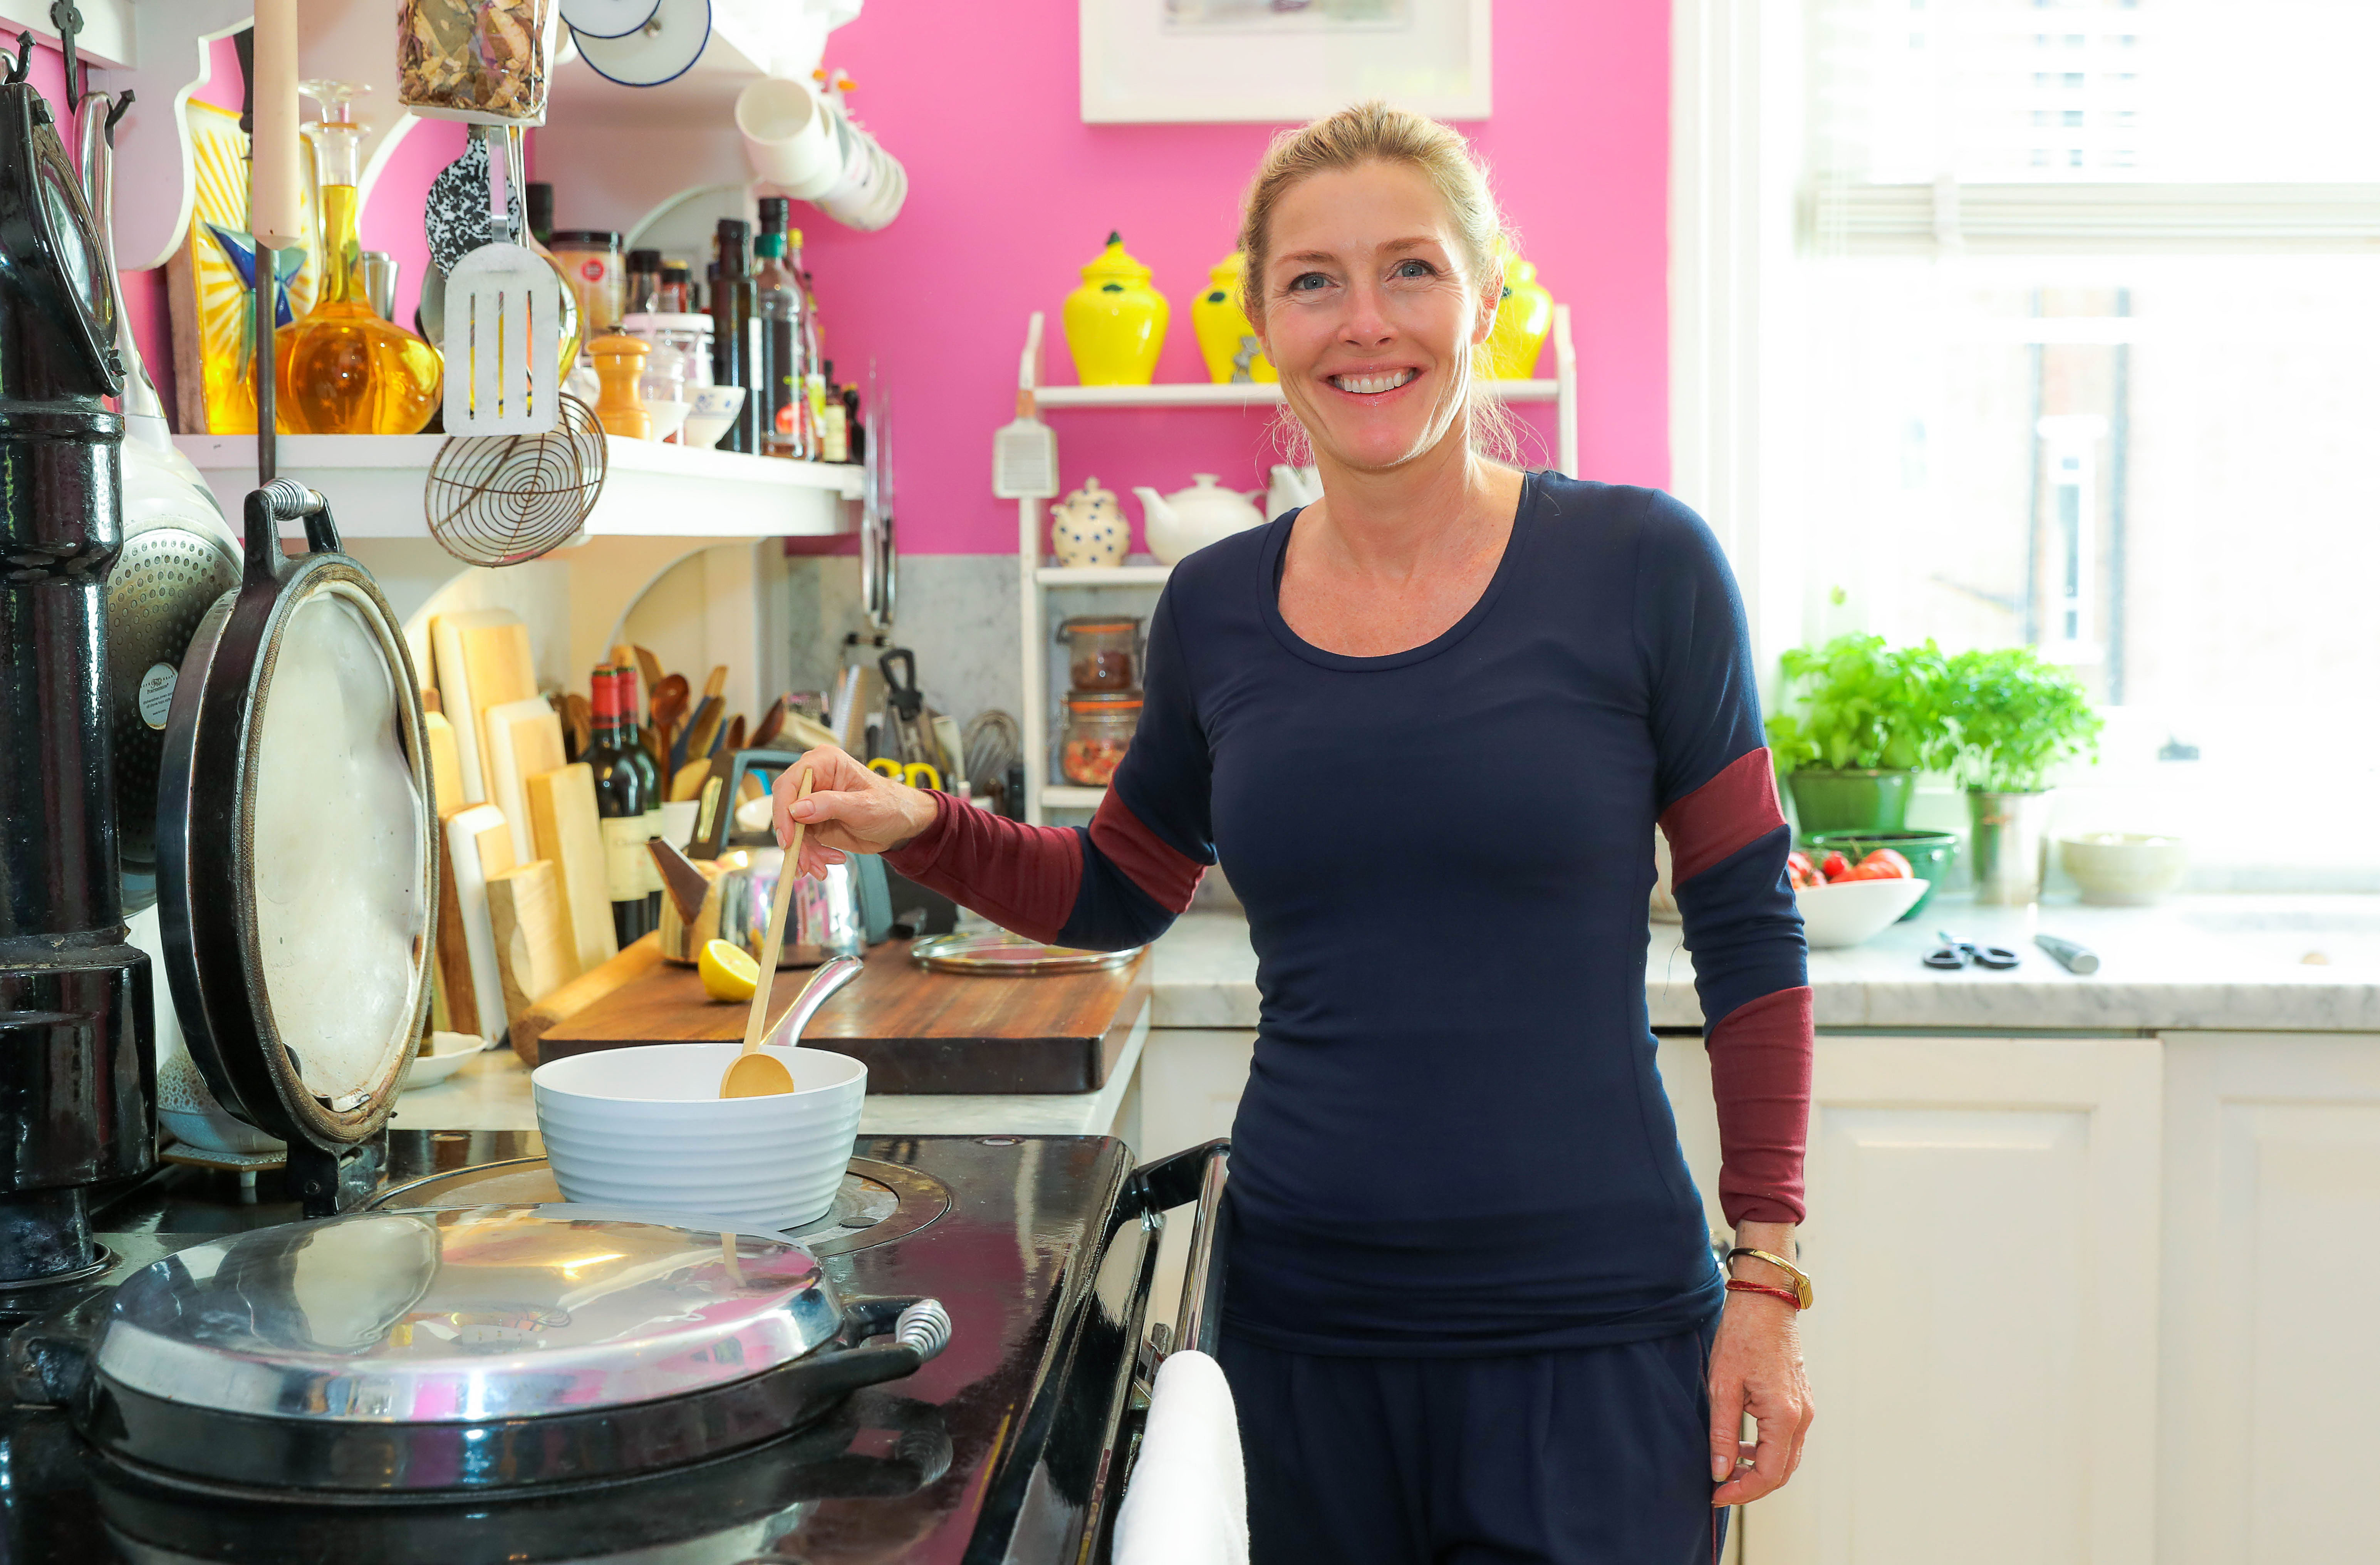 Sophie Conran wears Asquith organic activewear in her pink kitchen.